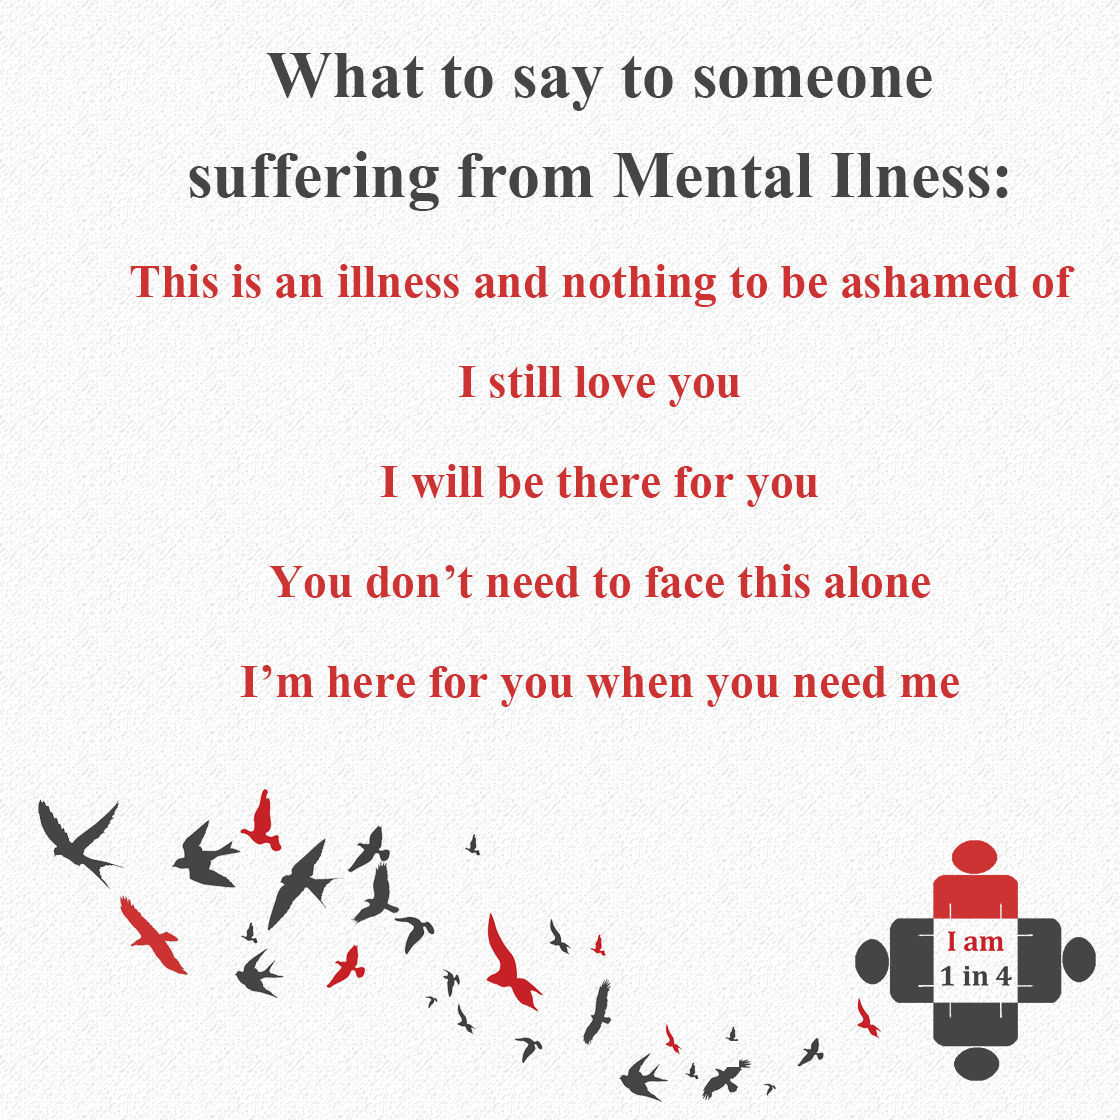 what to say to someone suffering from mental illness